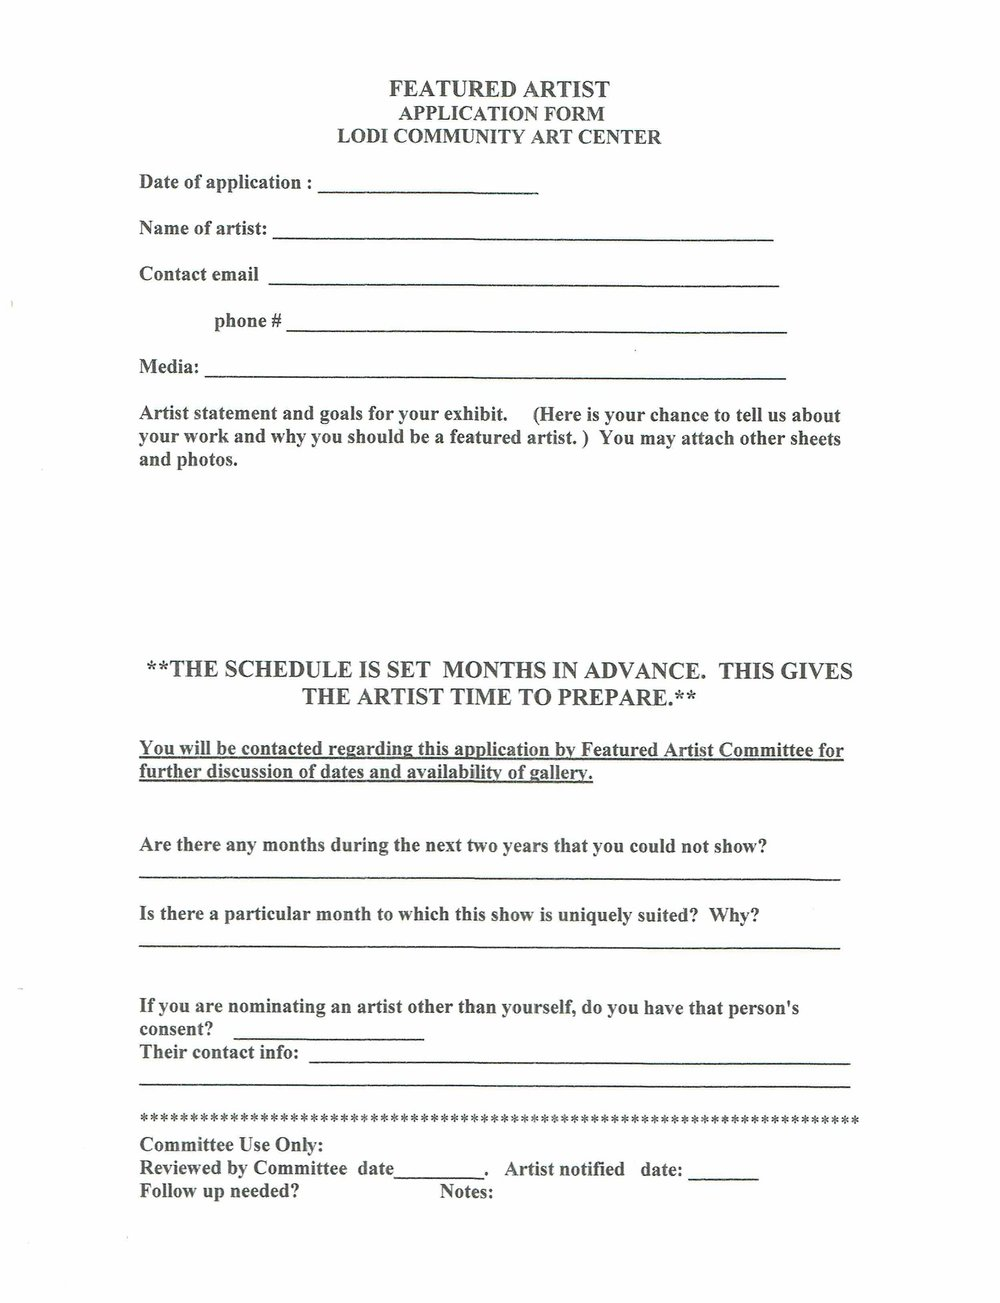 Featured Artist Application Form